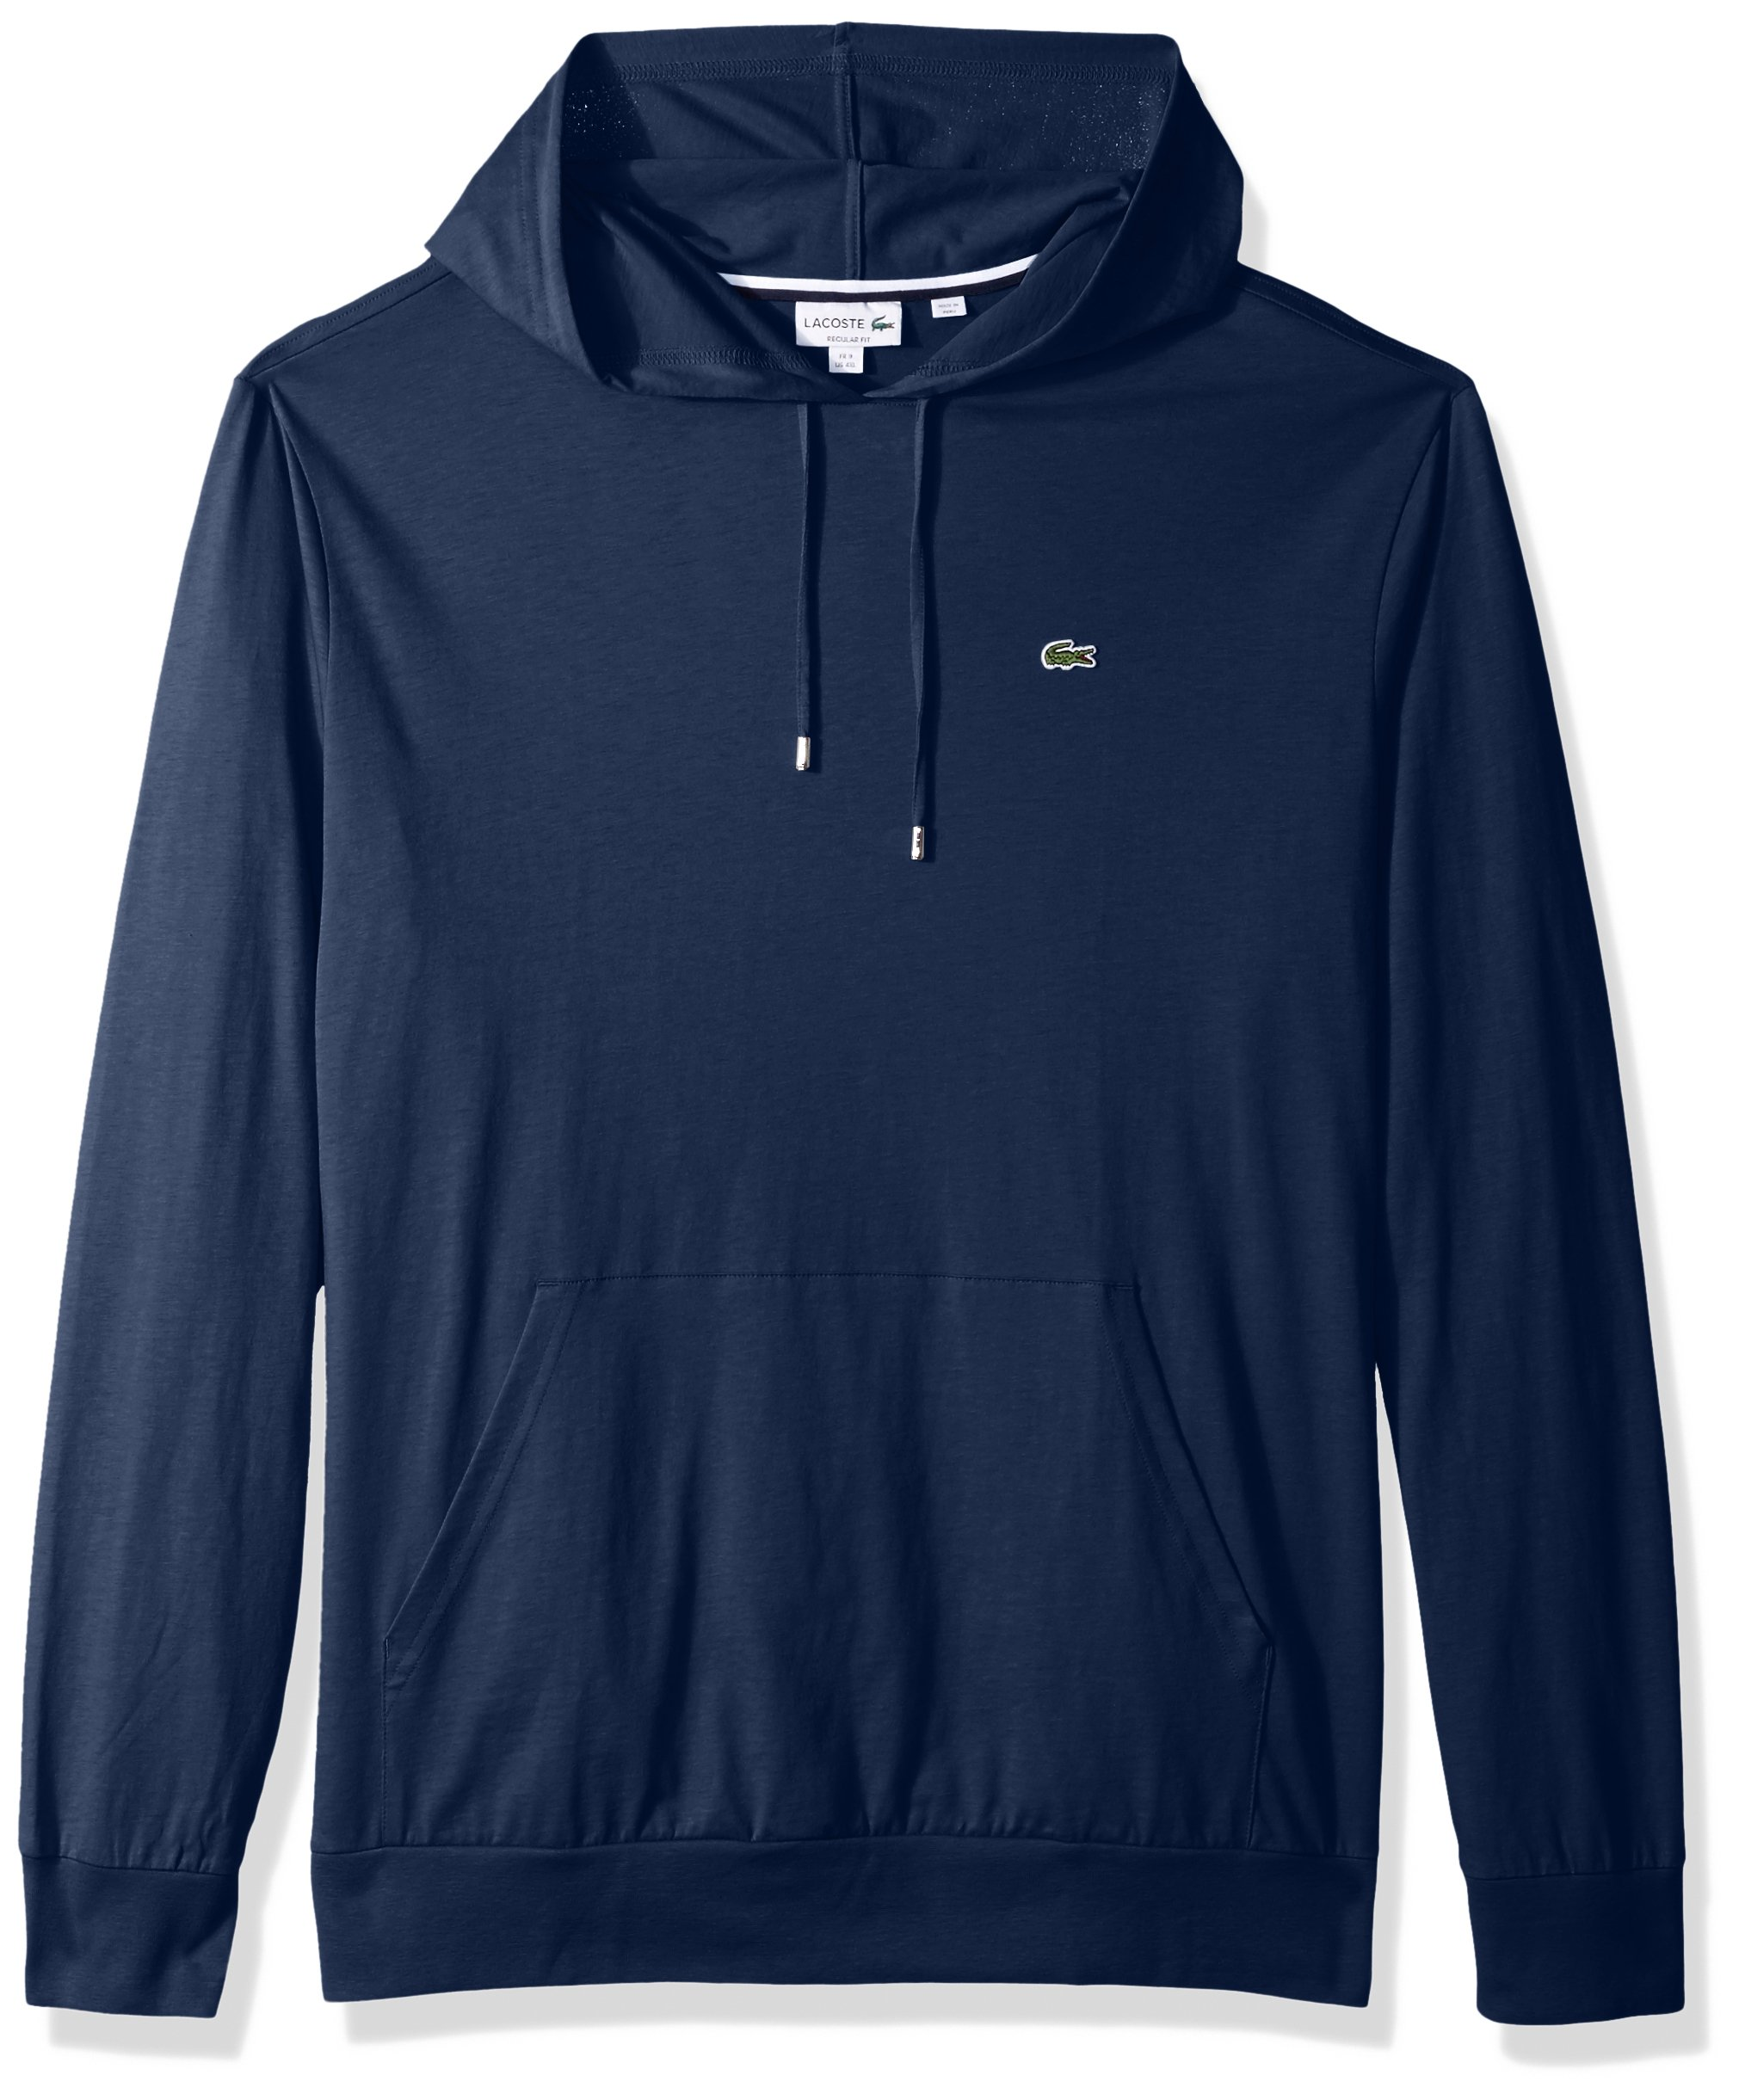 Lacoste Men's Long Sleeve Jersey Hoodie Tee With Central Pocket, TH9349, Anchor Chine, 4XL